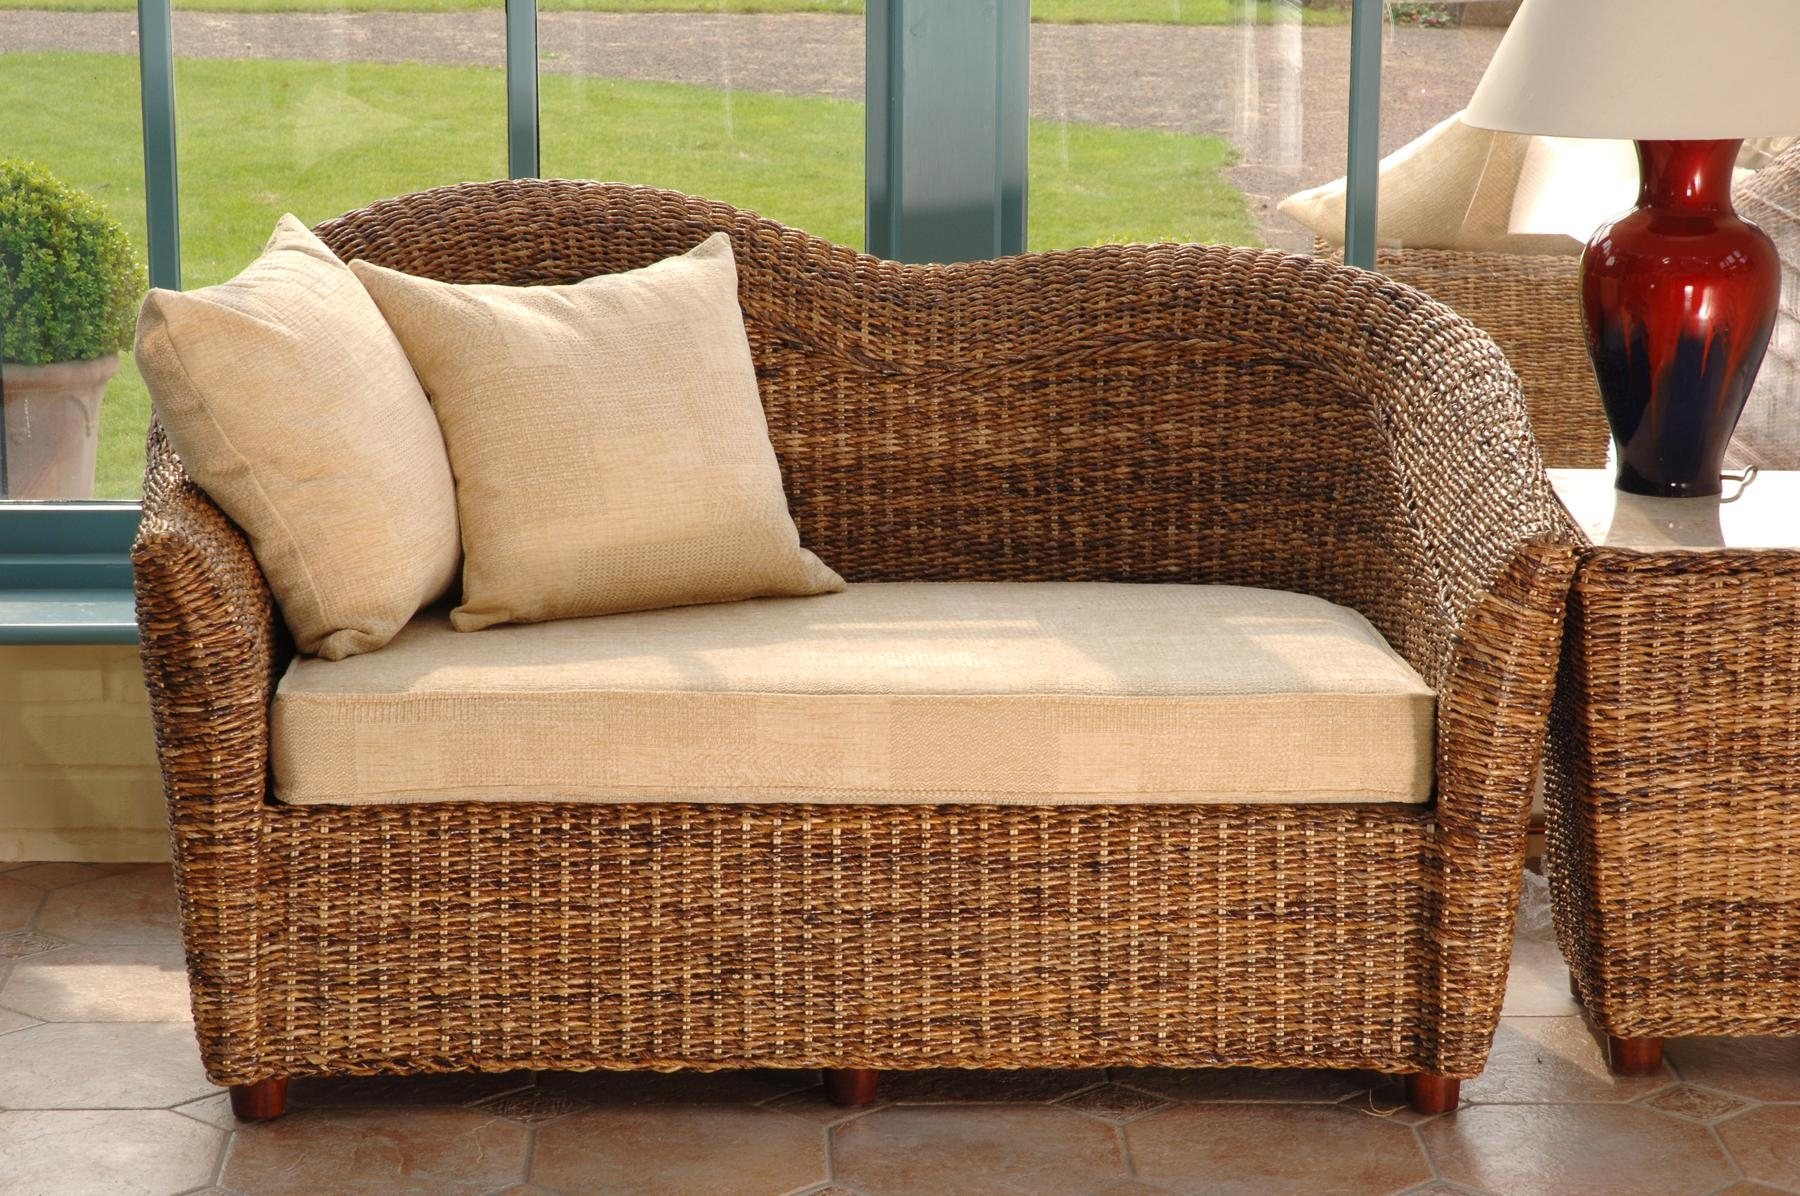 Cane Furniture: Value For Money Deal Always – Goodworksfurniture Throughout Bambo Sofas (Image 11 of 22)